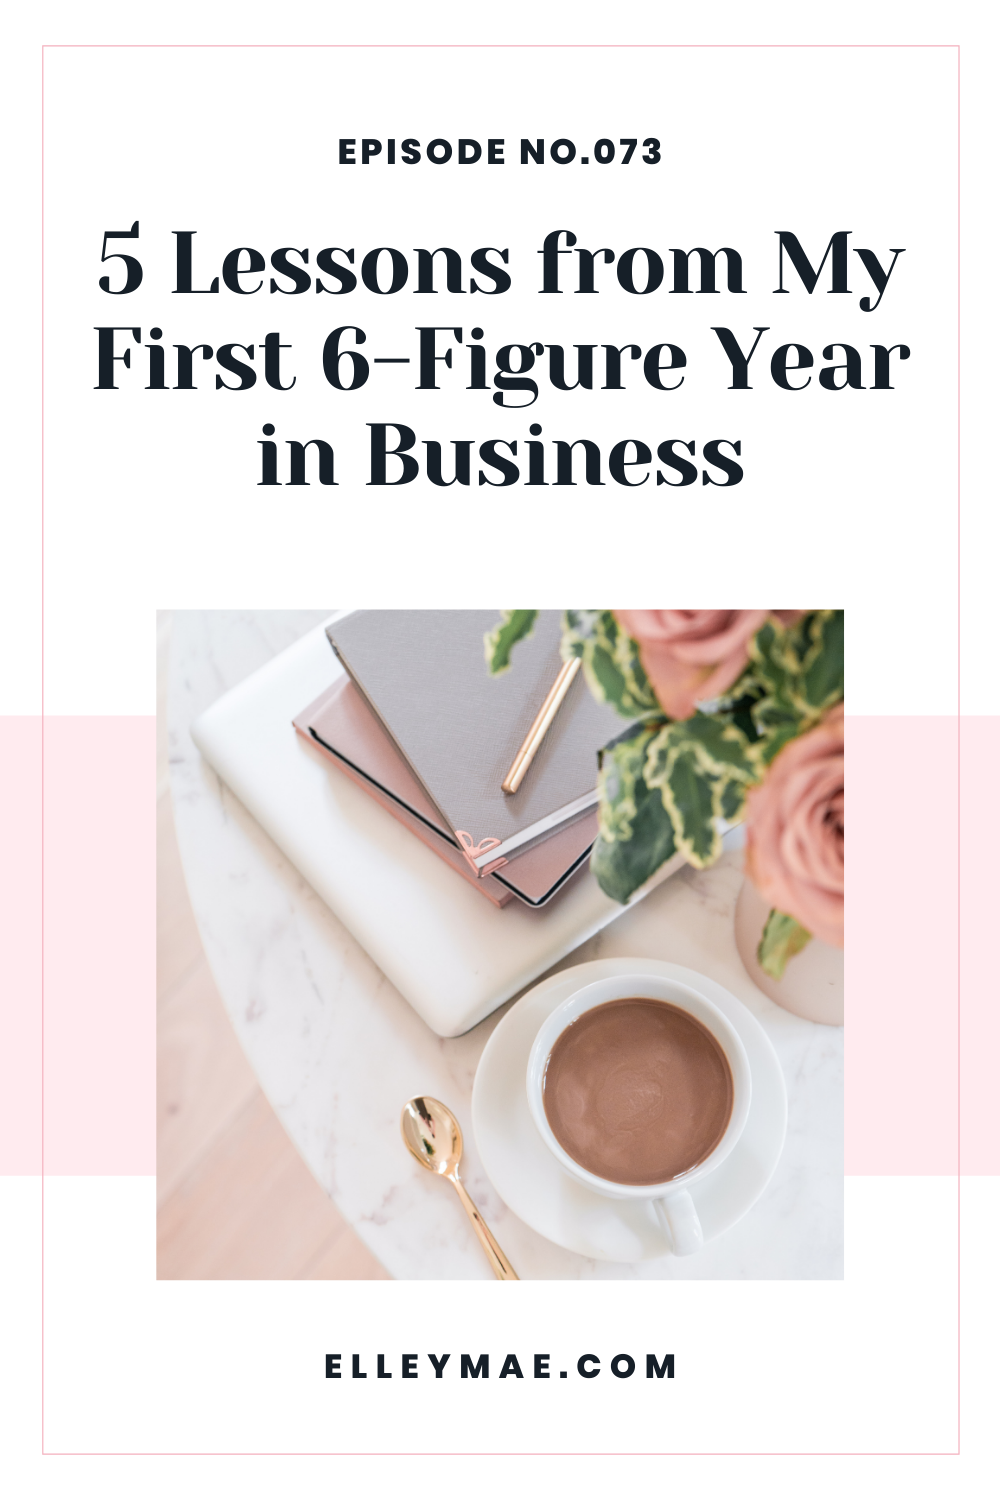 073. Reflecting on My First 6-Figure Year & The Lessons I Learned